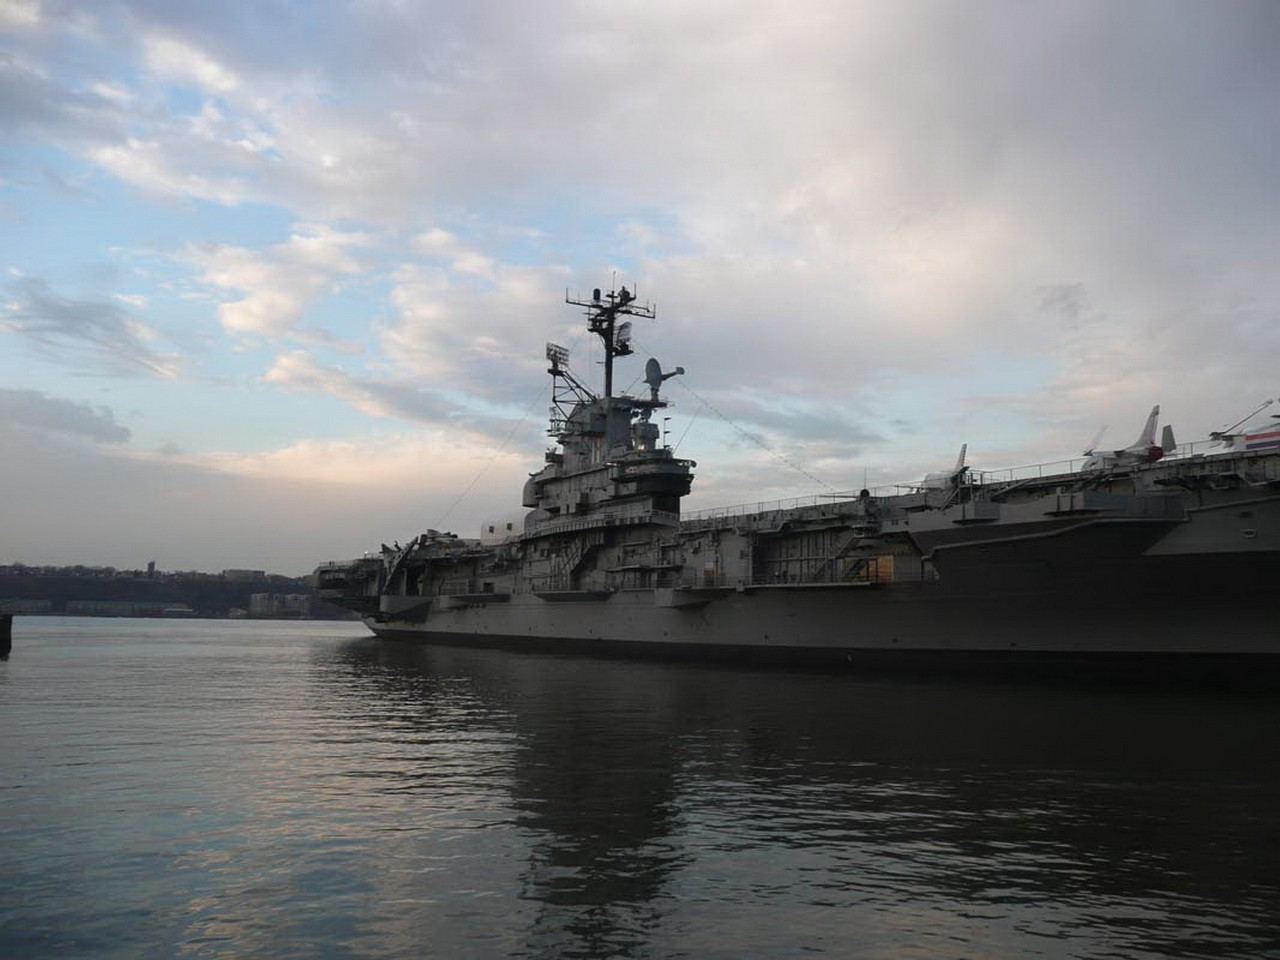 USS Intrepid (CV-11) - Chodiť